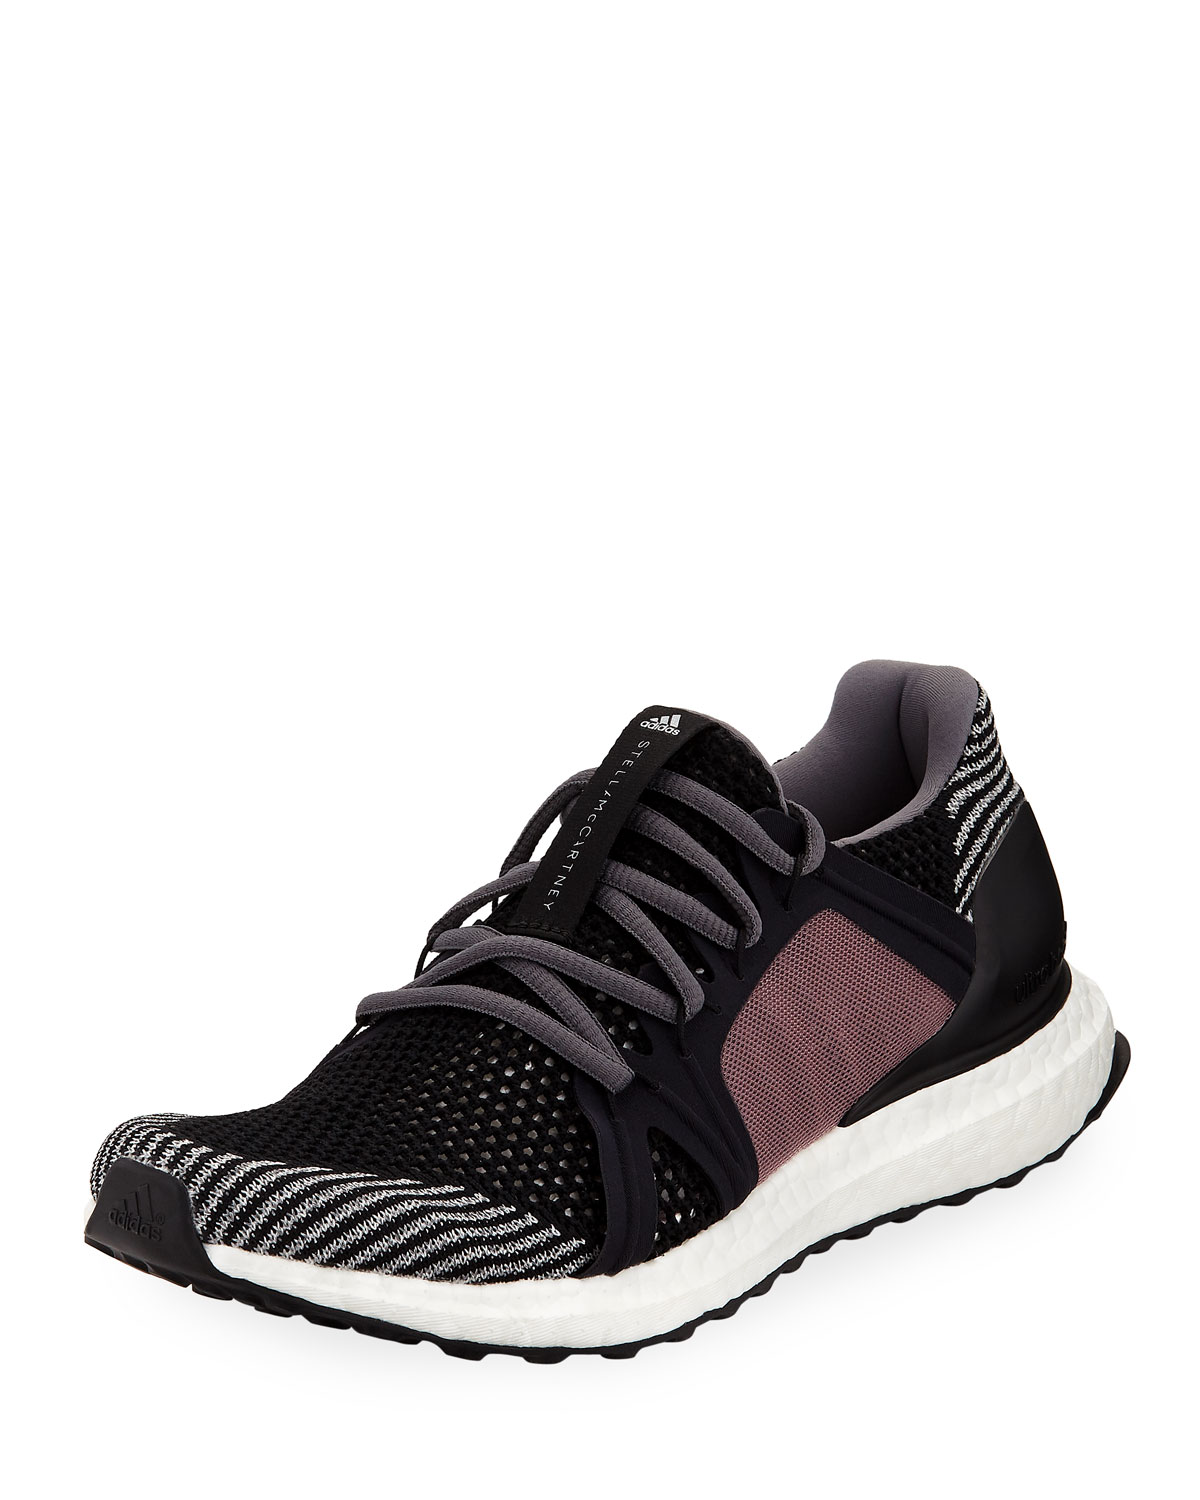 separation shoes 338d5 a75ef adidas by Stella McCartney UltraBOOST Flat-Knit Trainer Runner Sneakers